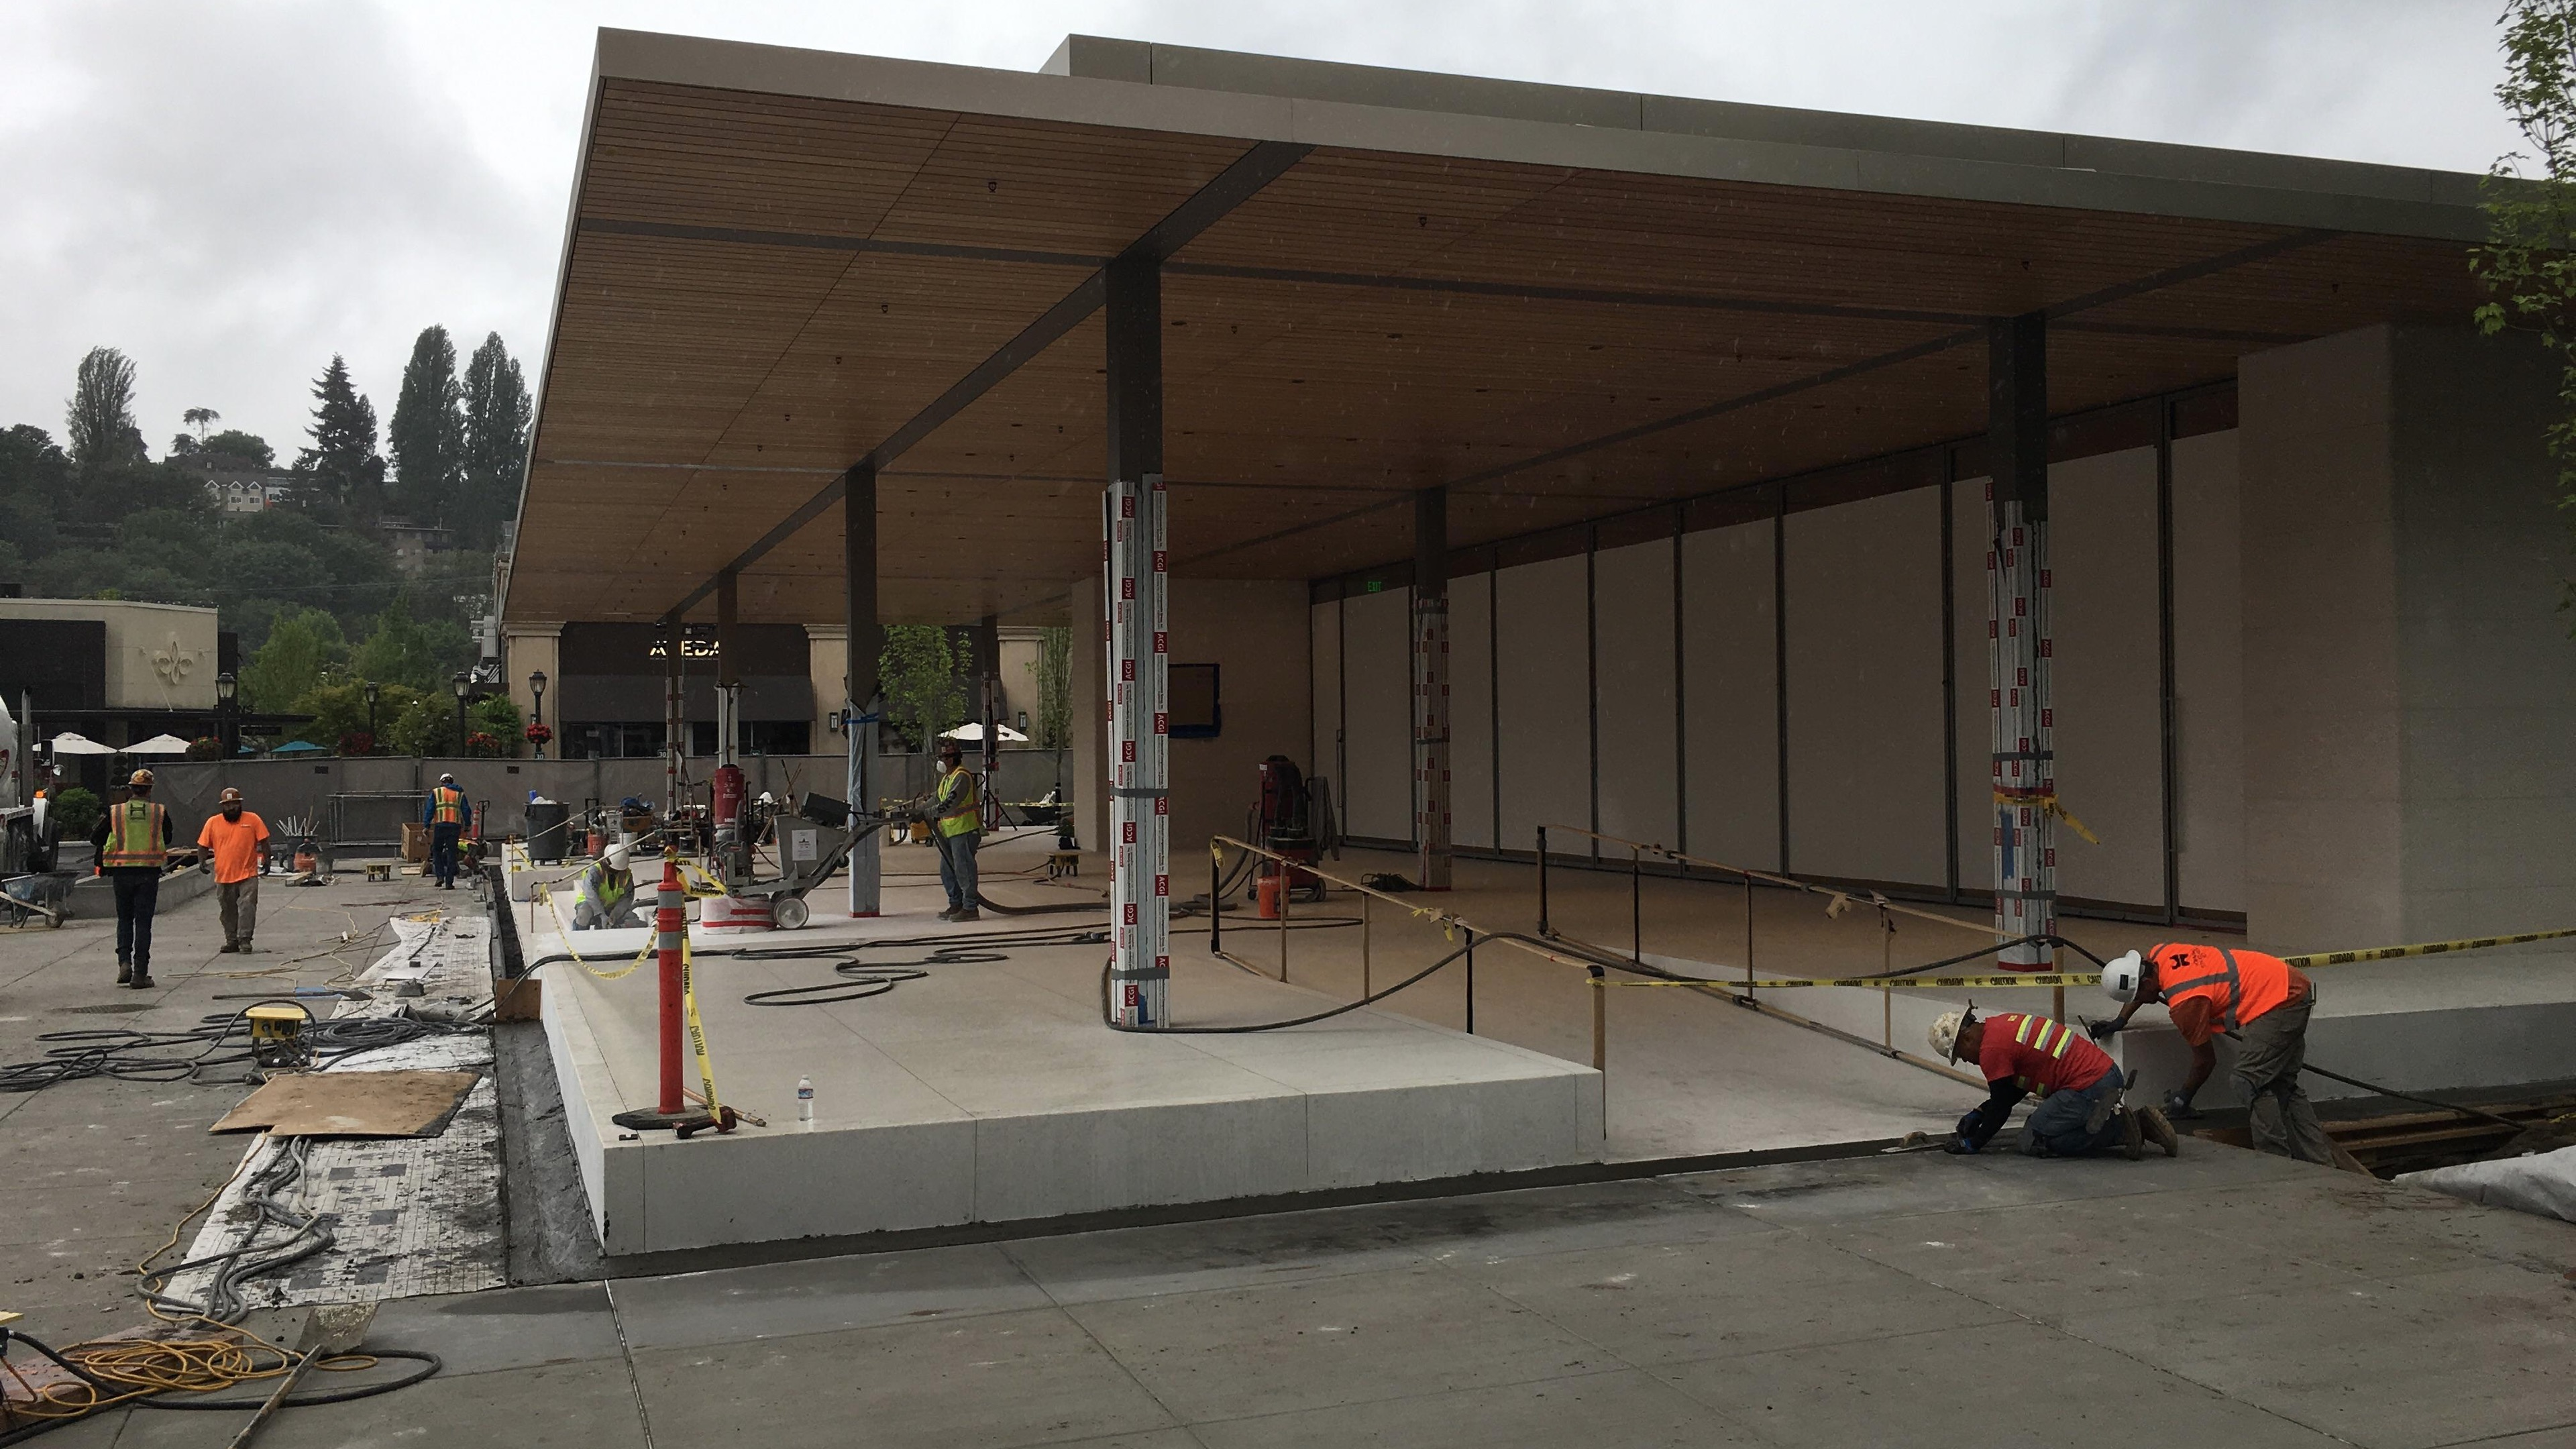 Photos and videos show impressive new Apple store in Seattle's University Village nearing completion [U]